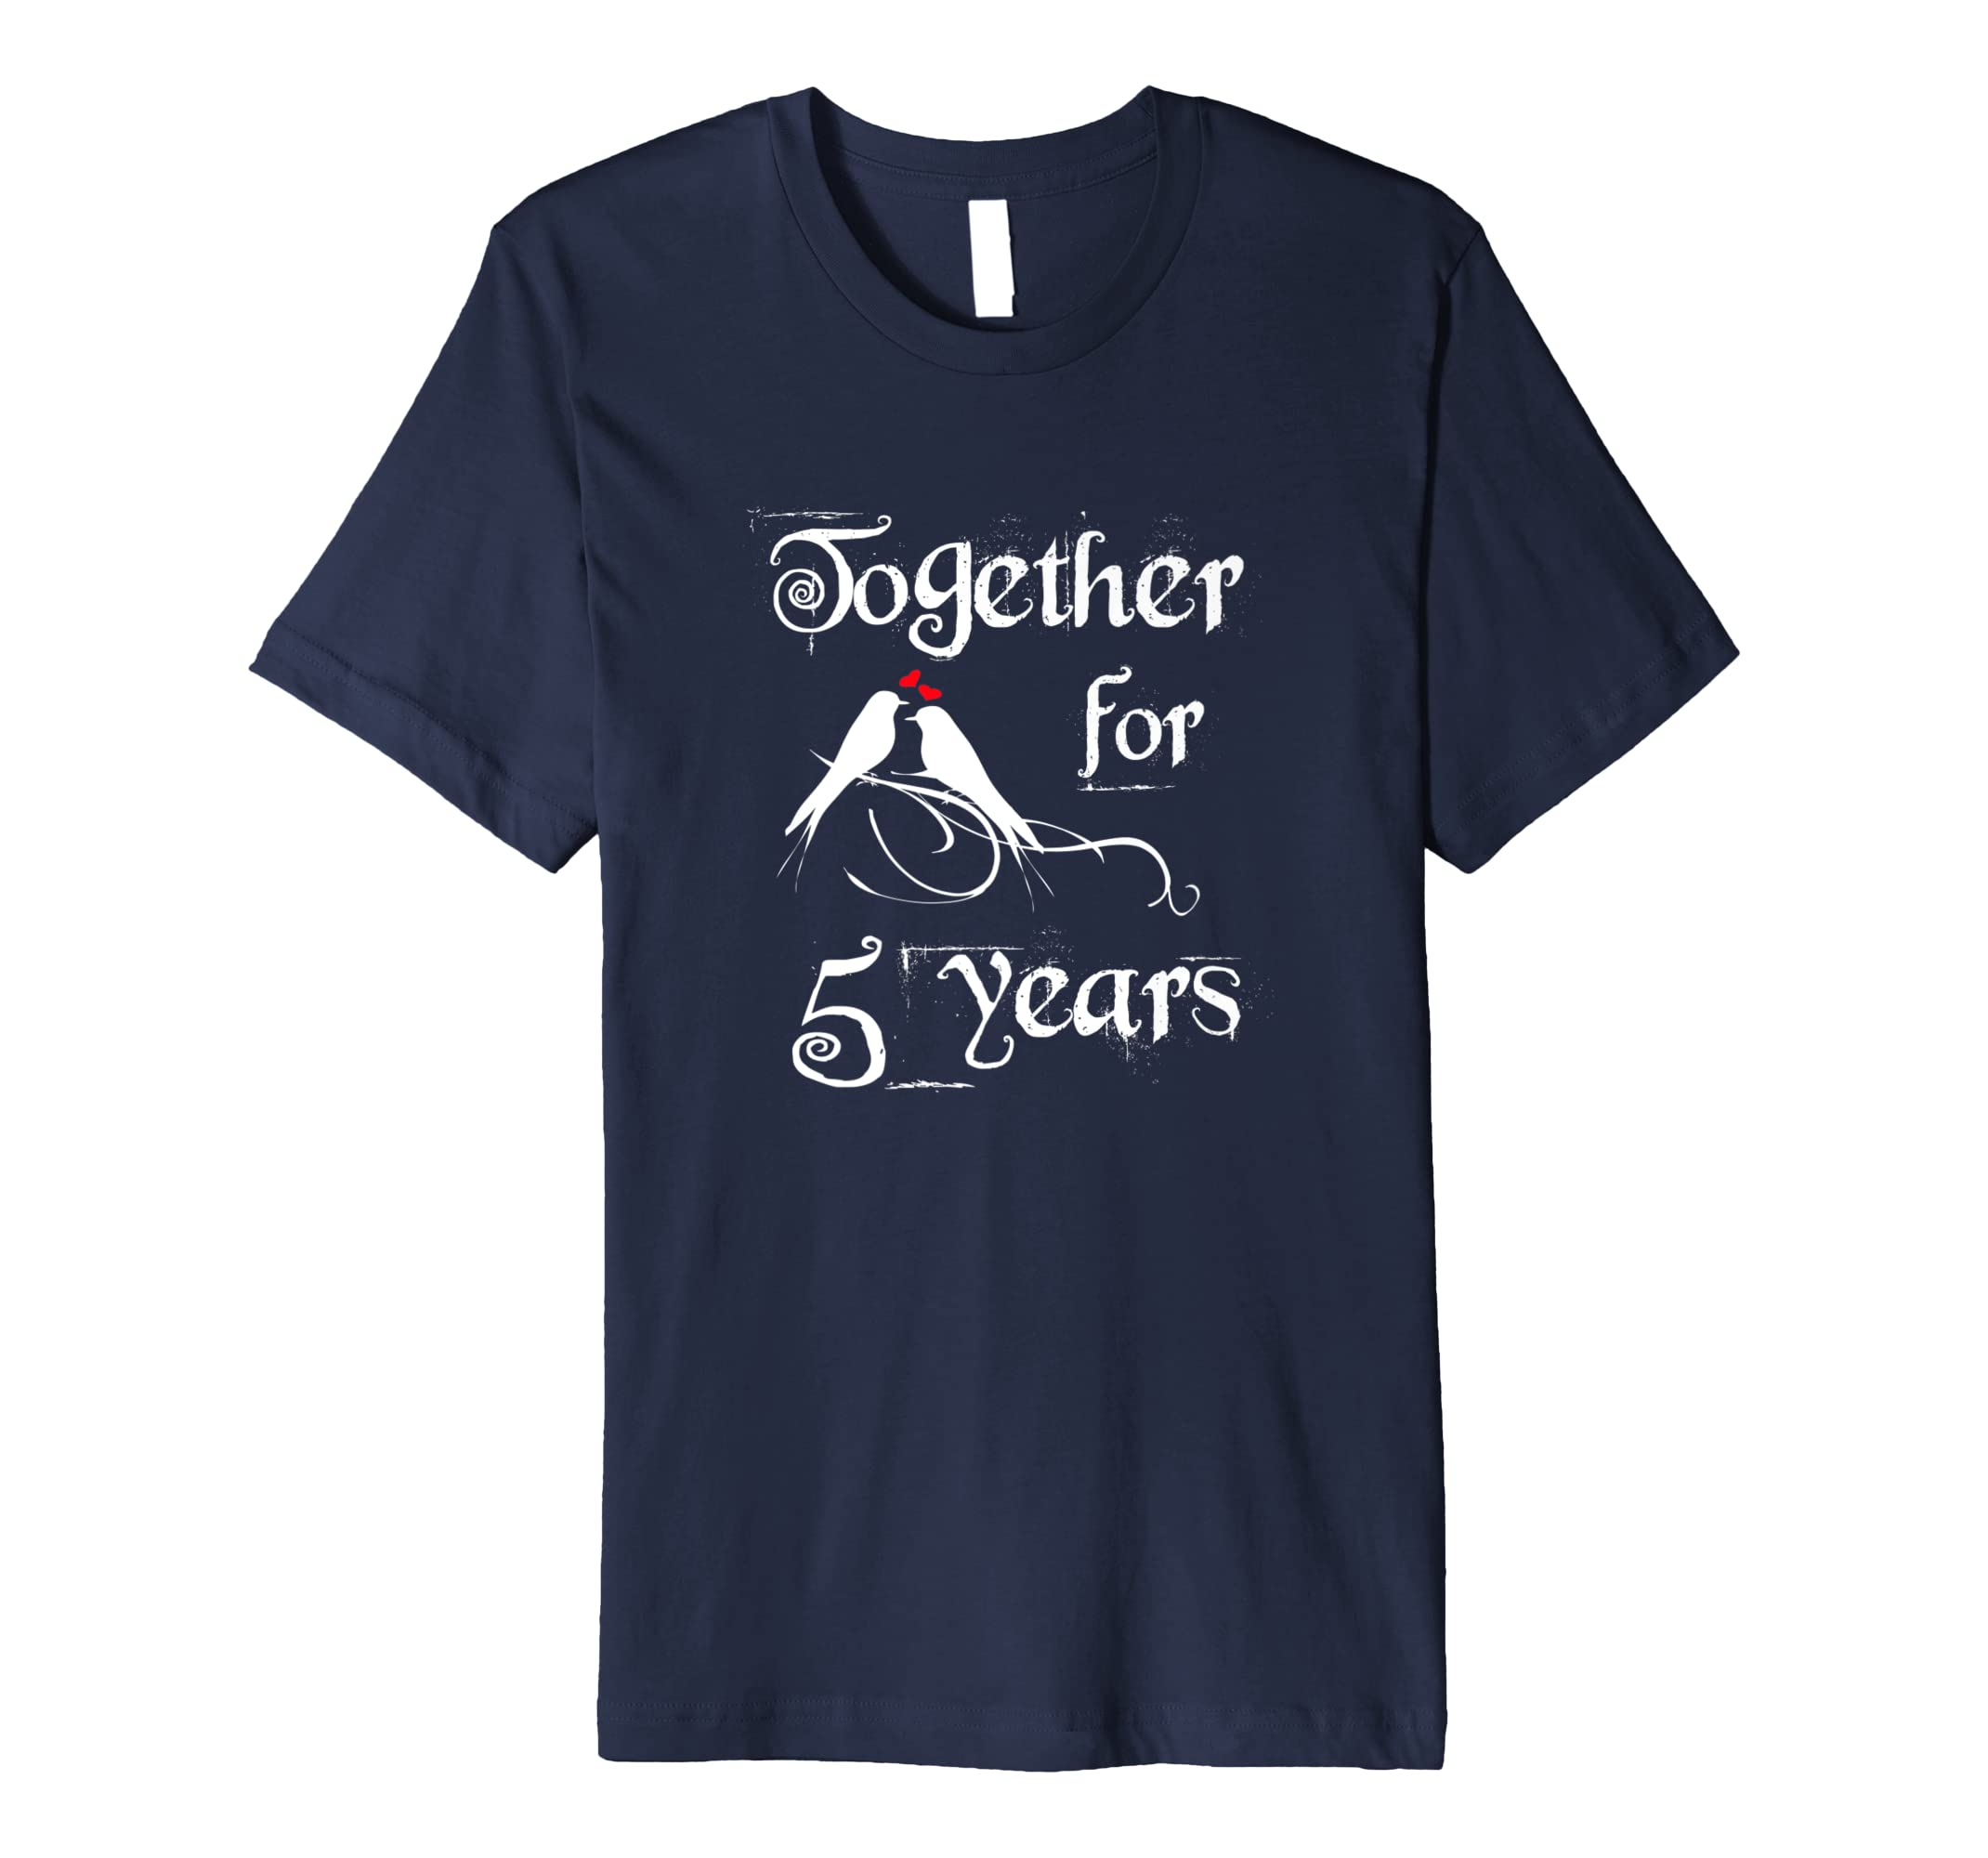 5th Anniversary Tshirt For Couples - 5 Years Together Tee-alottee gift